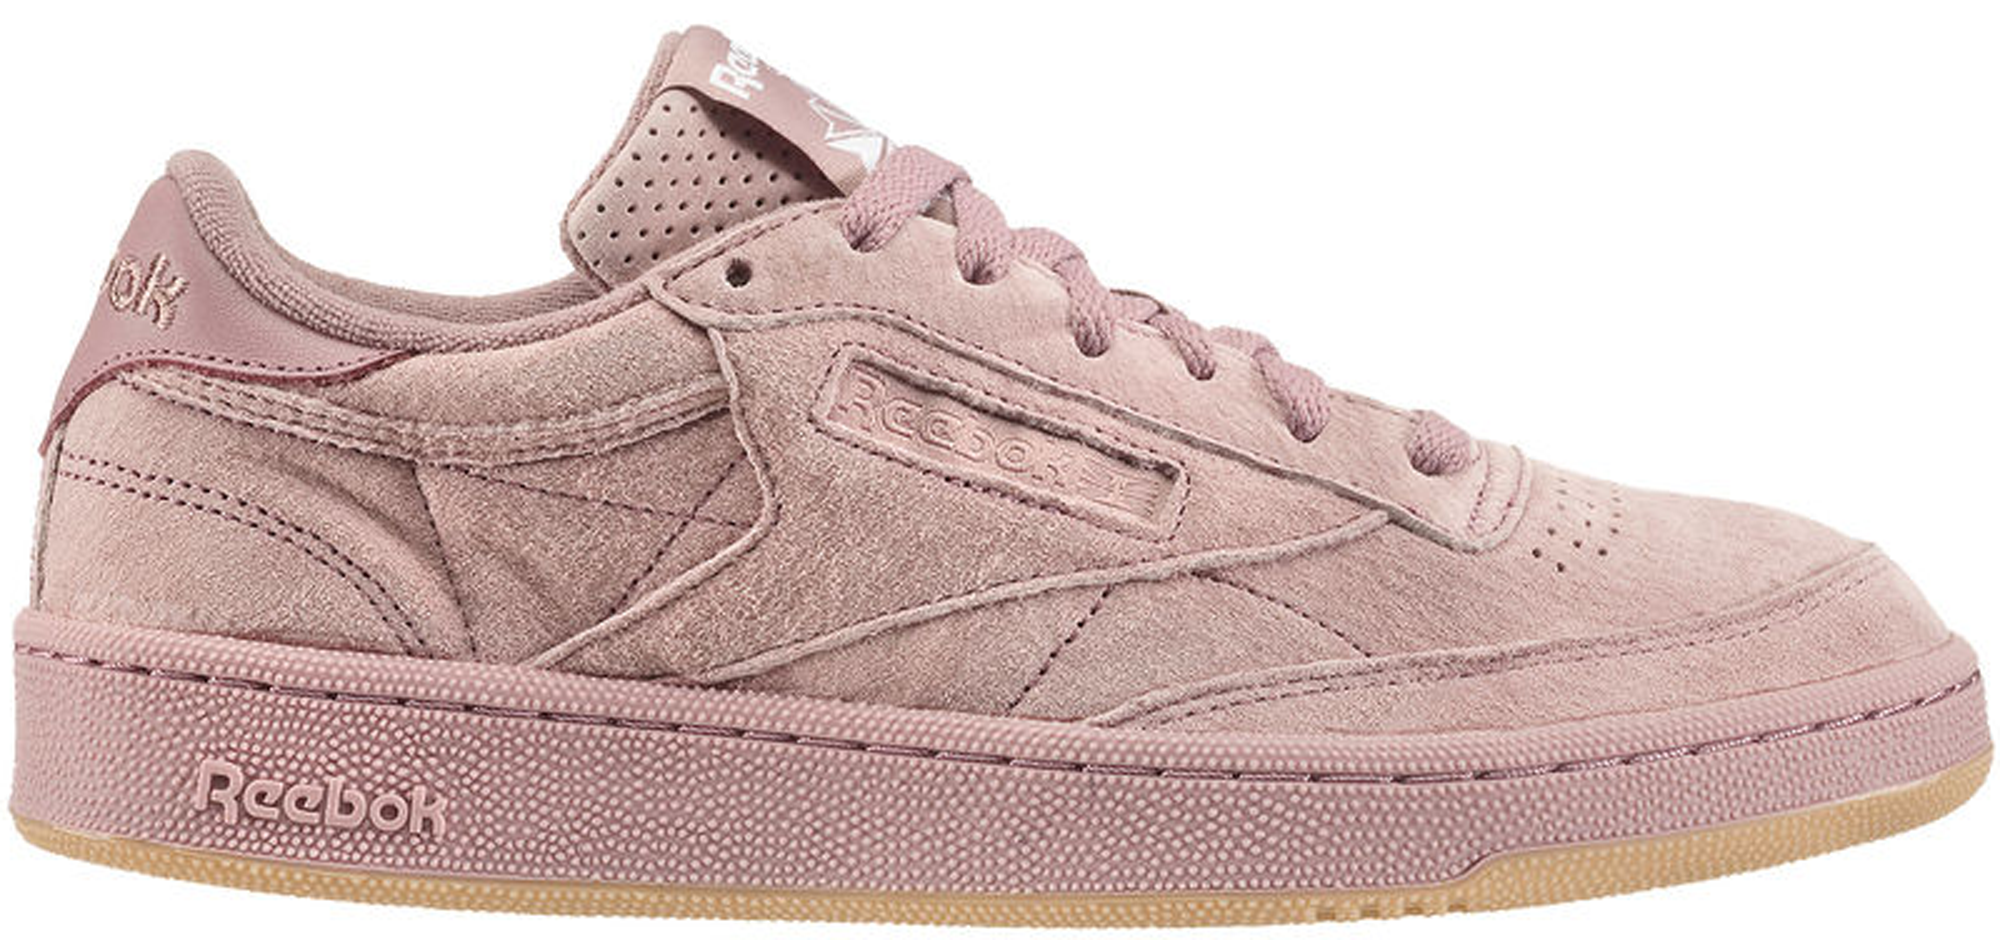 Reebok Club C 85 Smoky Orchid